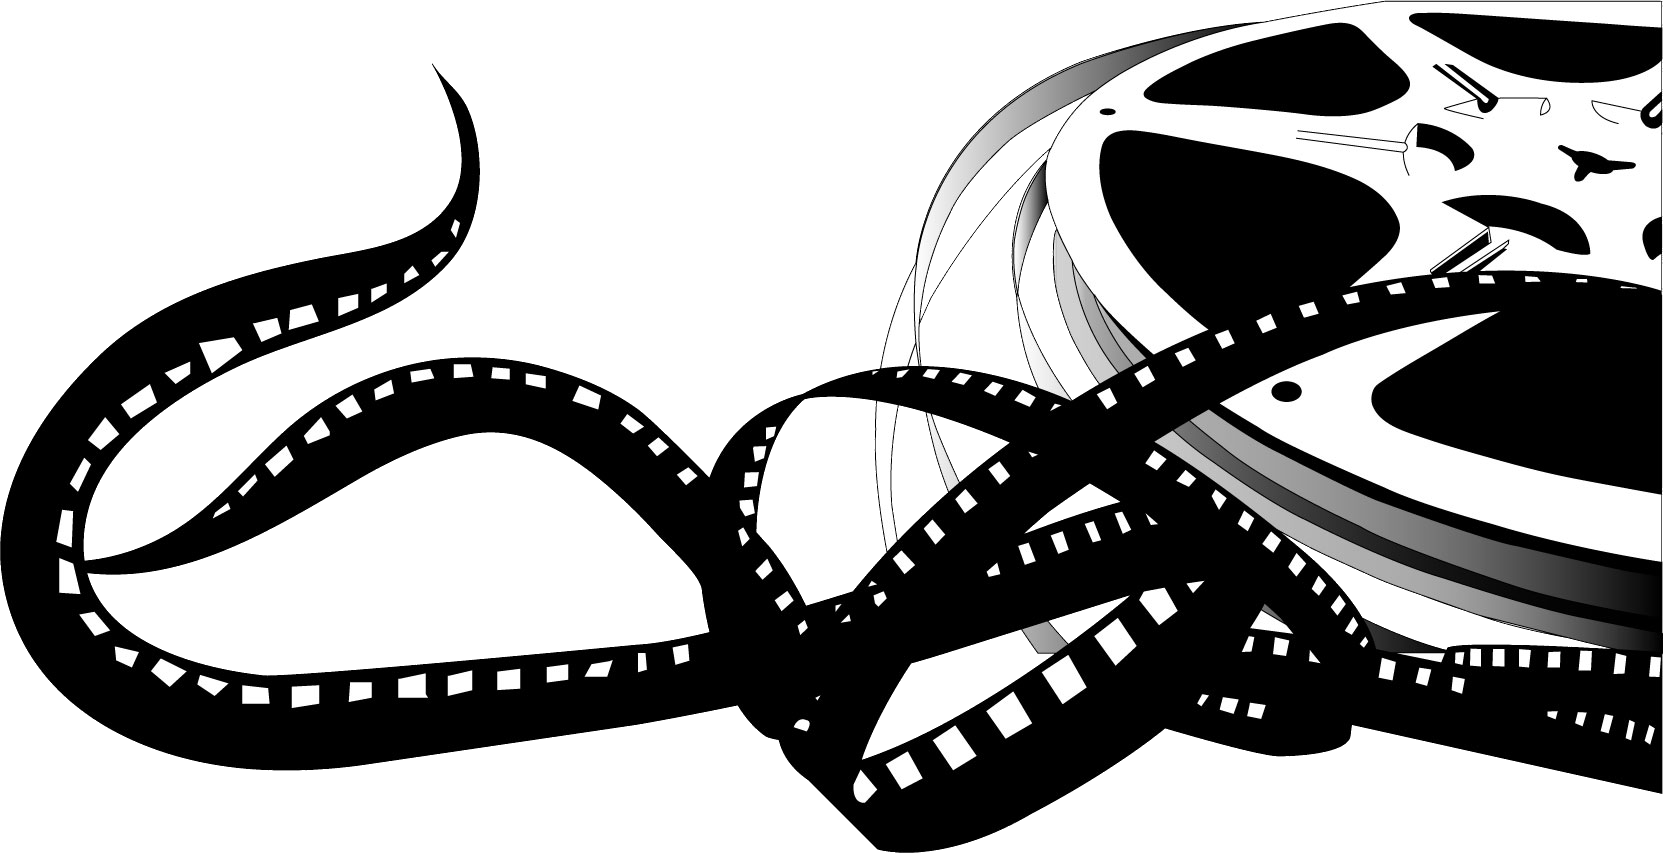 Film clipart film production. Free movies cliparts transparent